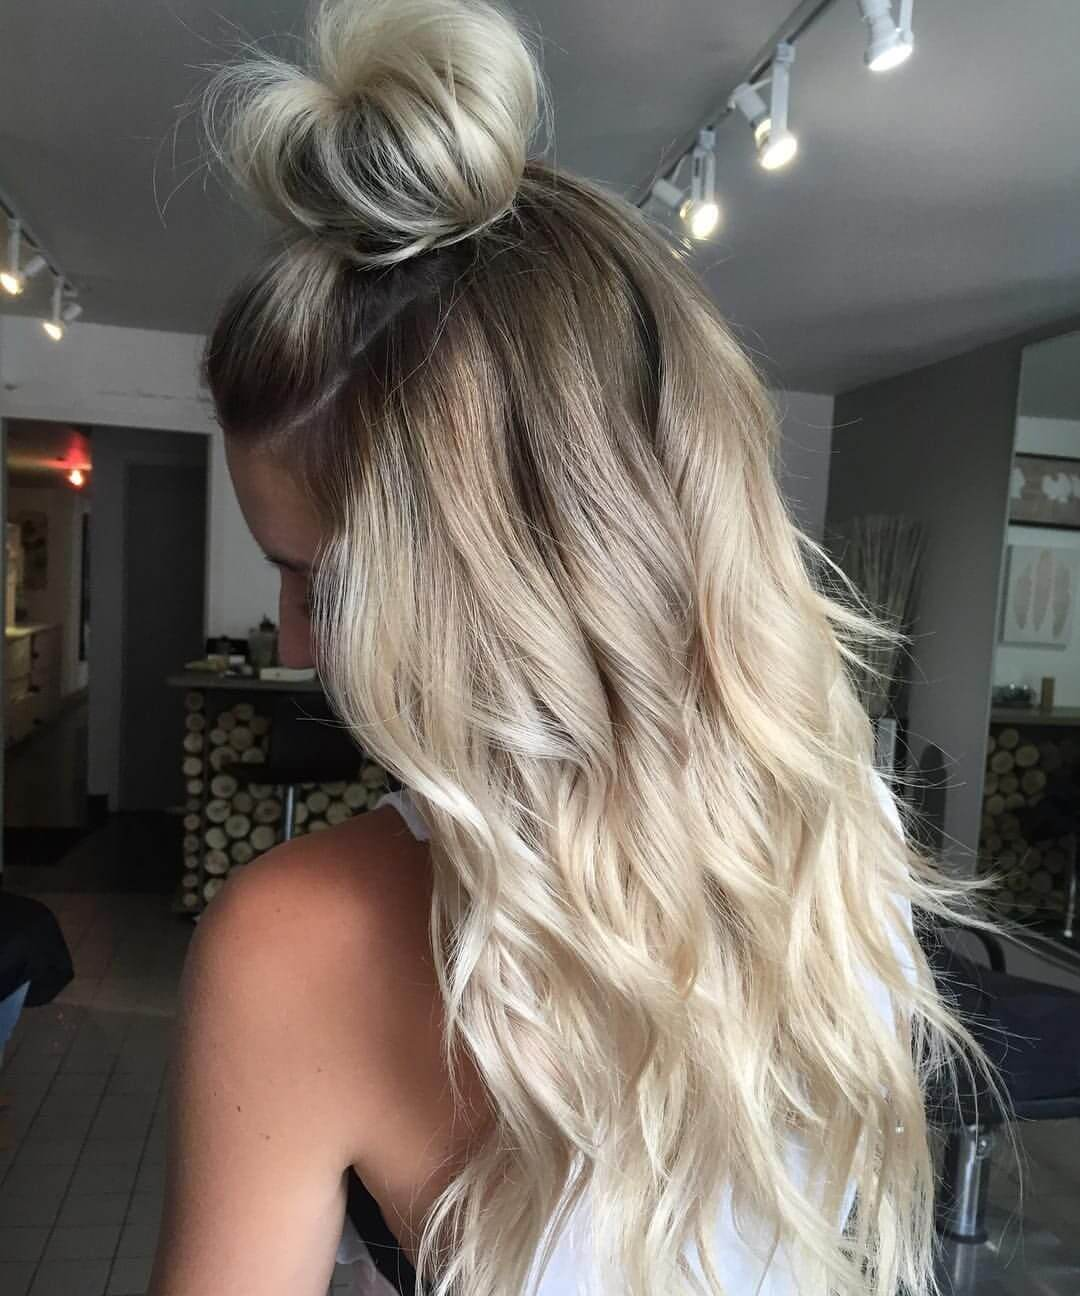 Platinum blonde ombre with cute top knot